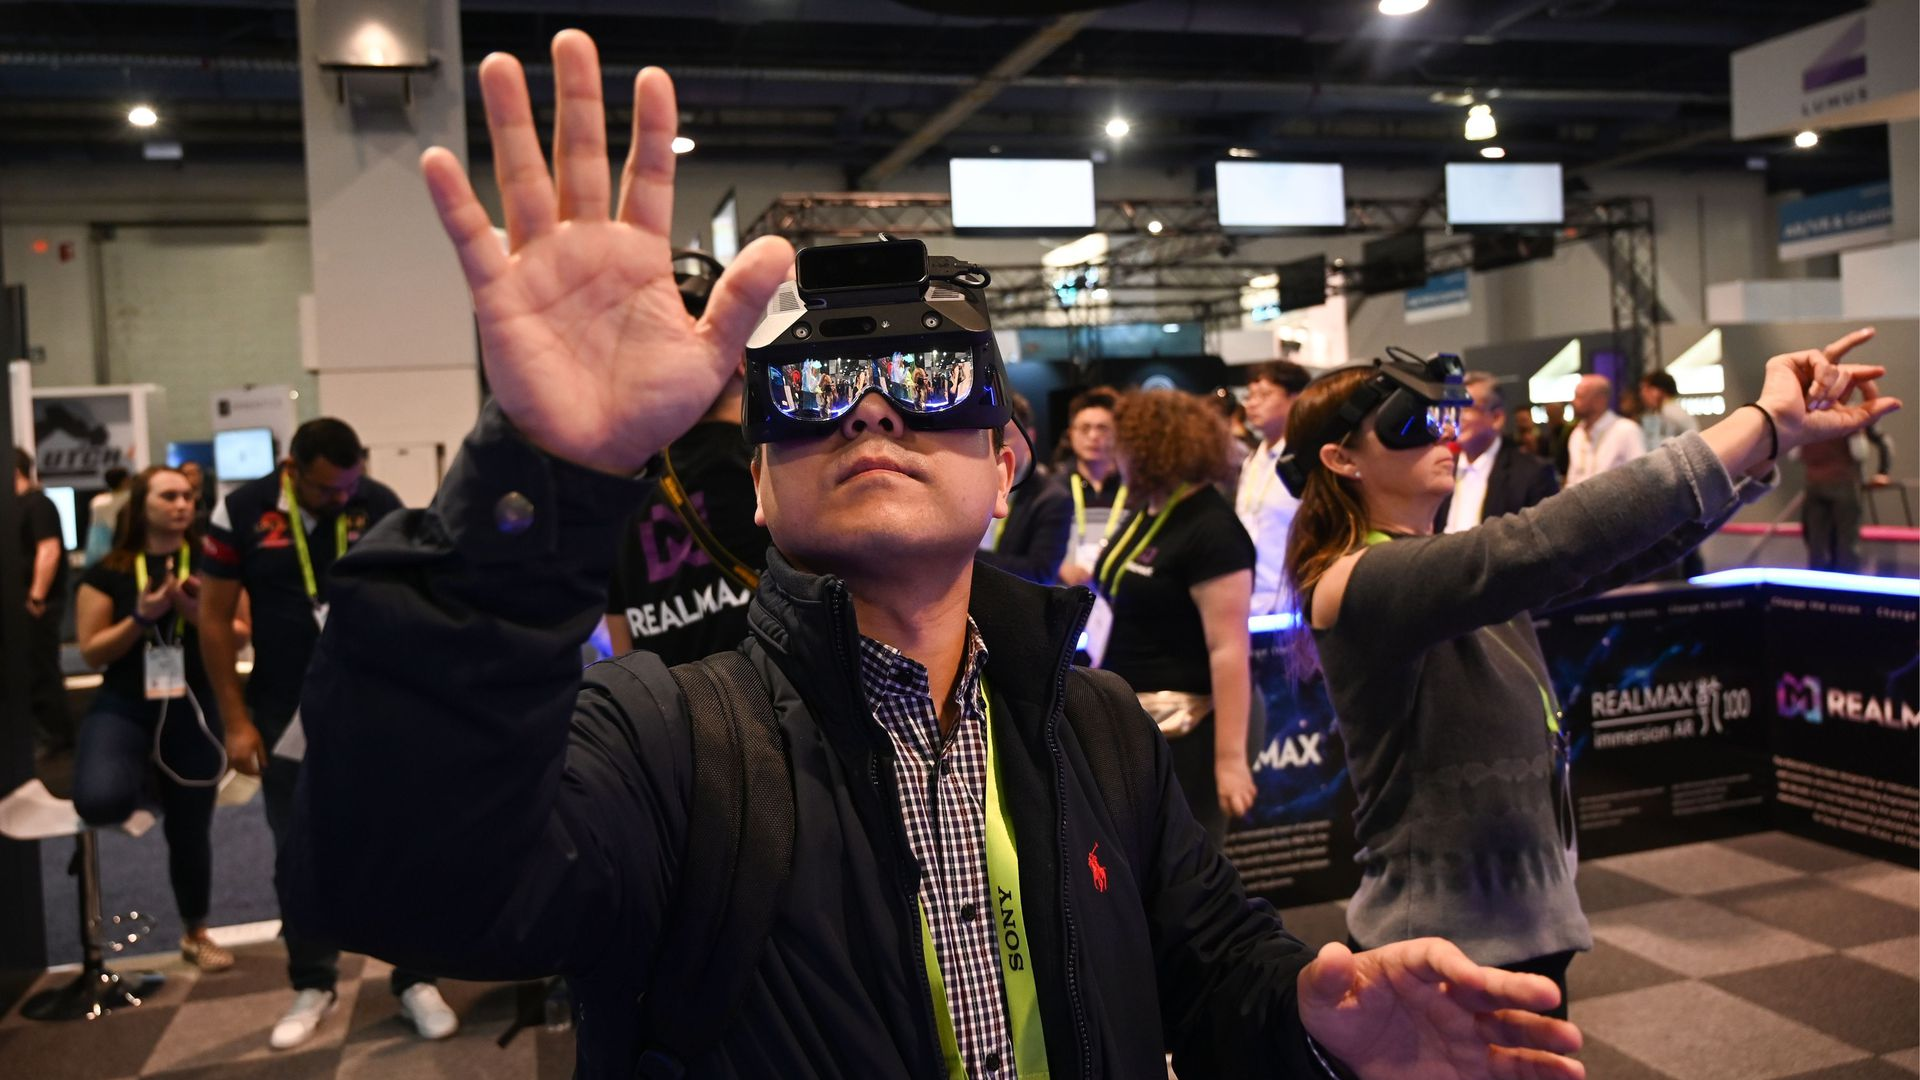 People using virtual reality glasses.